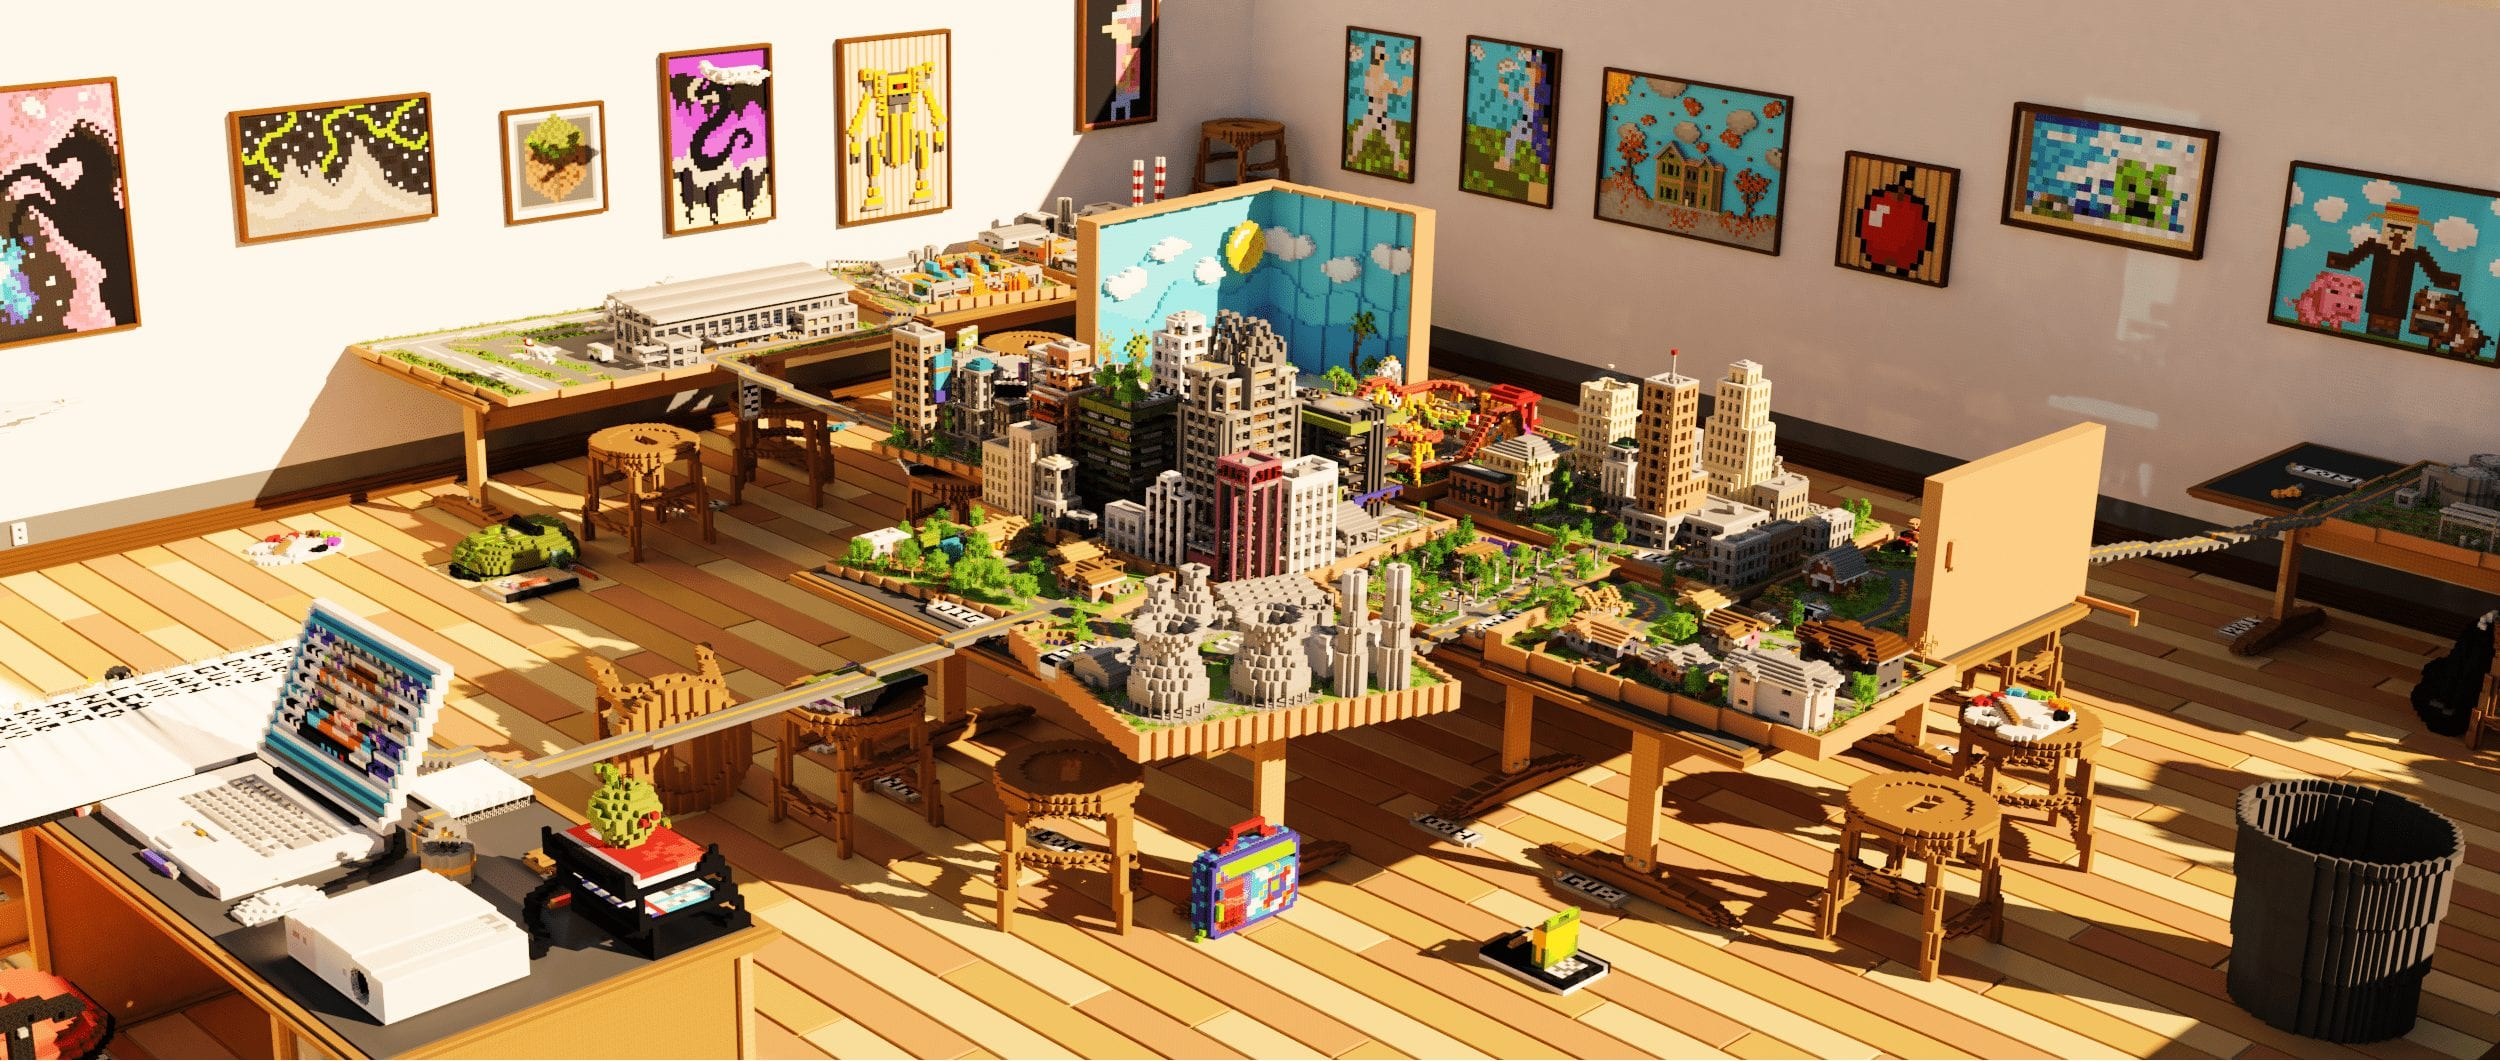 Papercraft 2: City Project by Jigarbov Productions Minecraft Marketplace